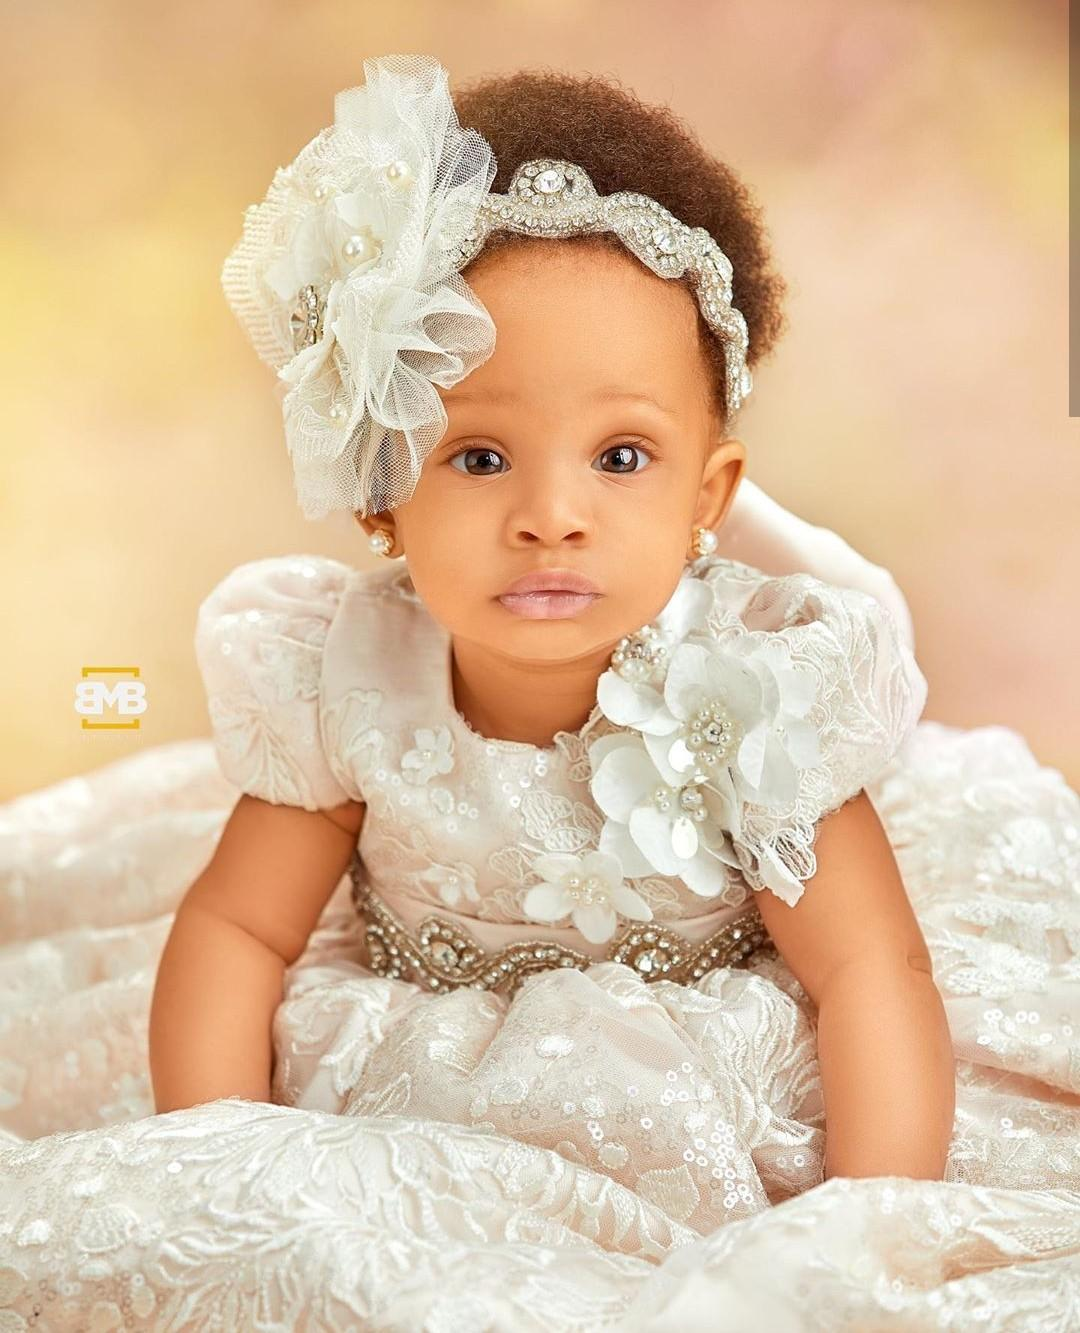 BamBam flaunts daughter